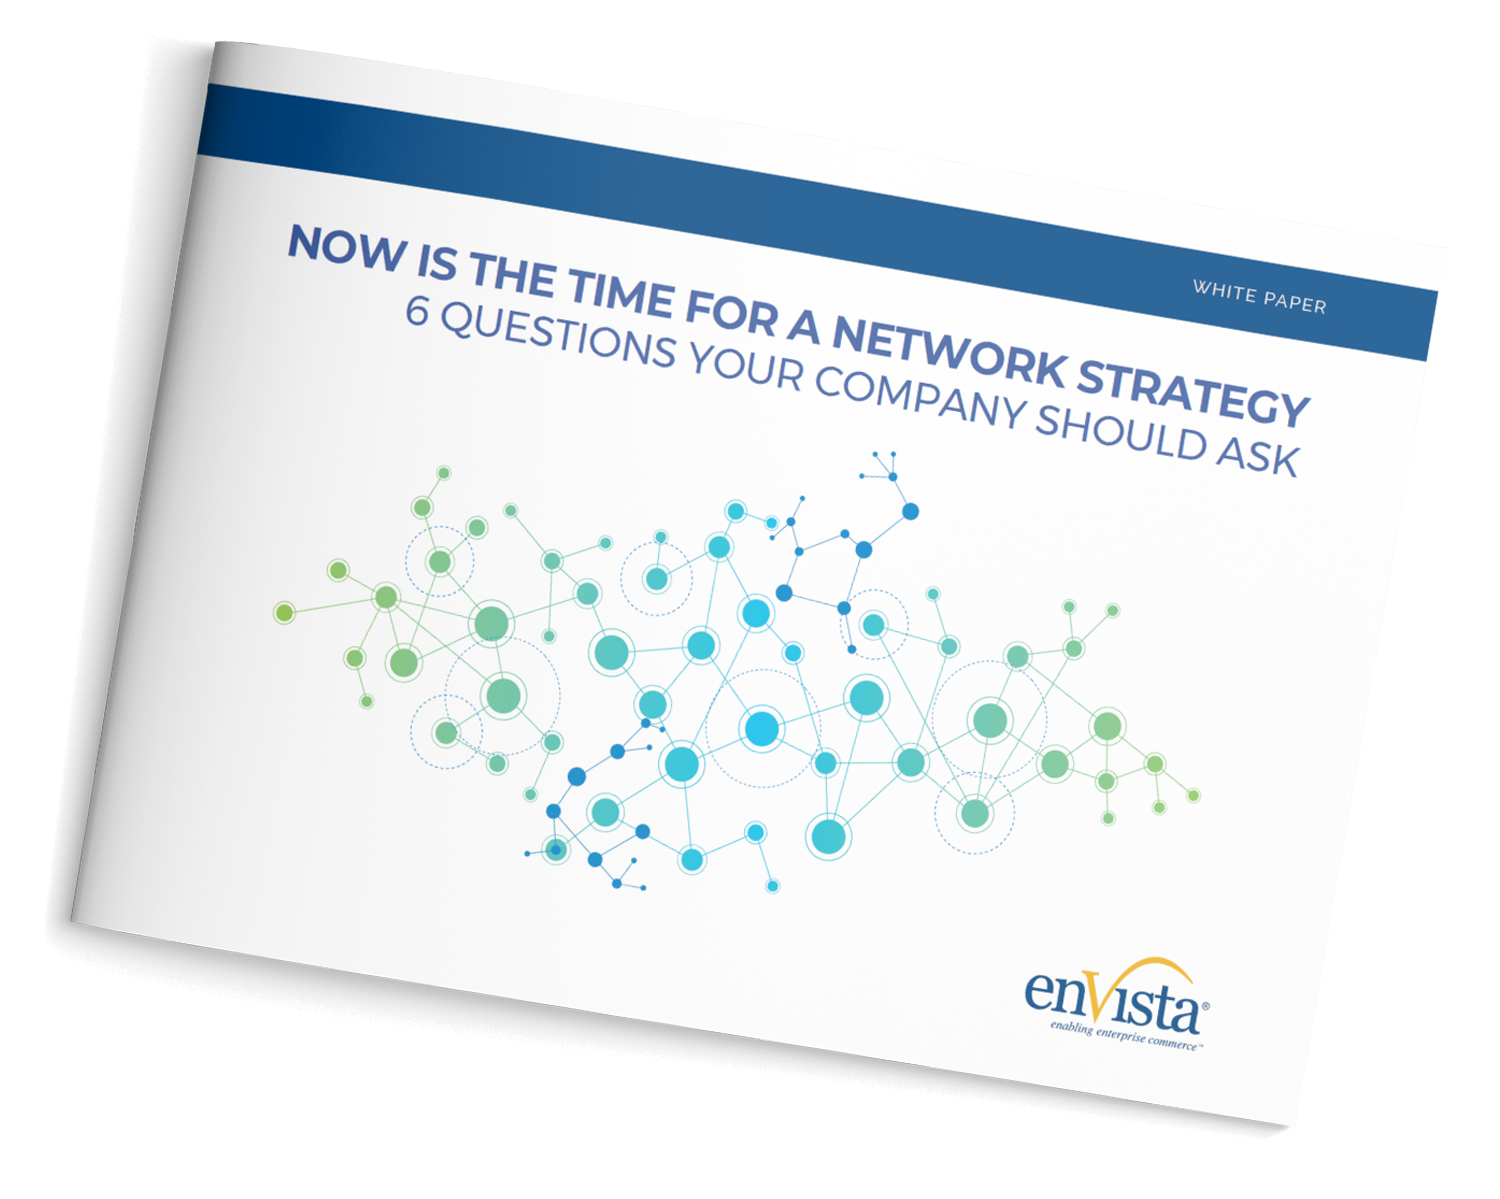 now-is-the-time-for-a-network-strategy